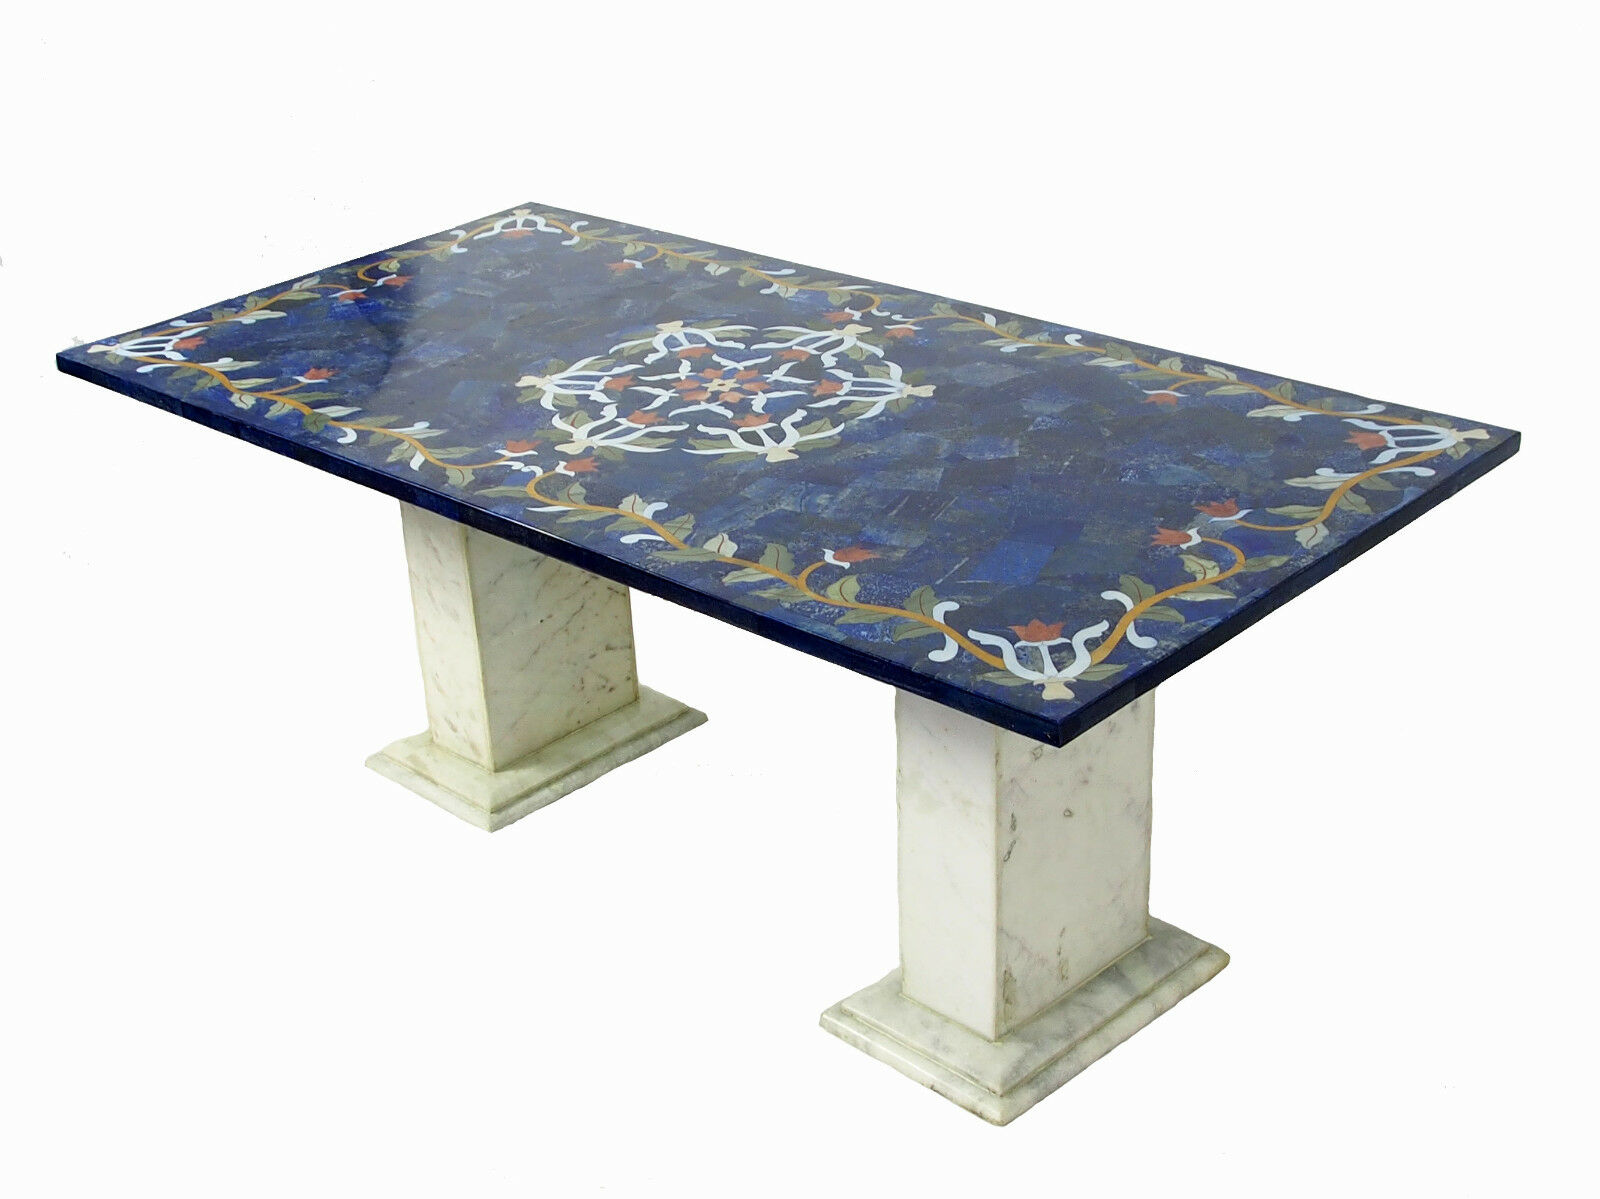 120x60 cm lapis lazuli pietra dura couchtischtisch mosaik table wohnzimmertisch eur. Black Bedroom Furniture Sets. Home Design Ideas